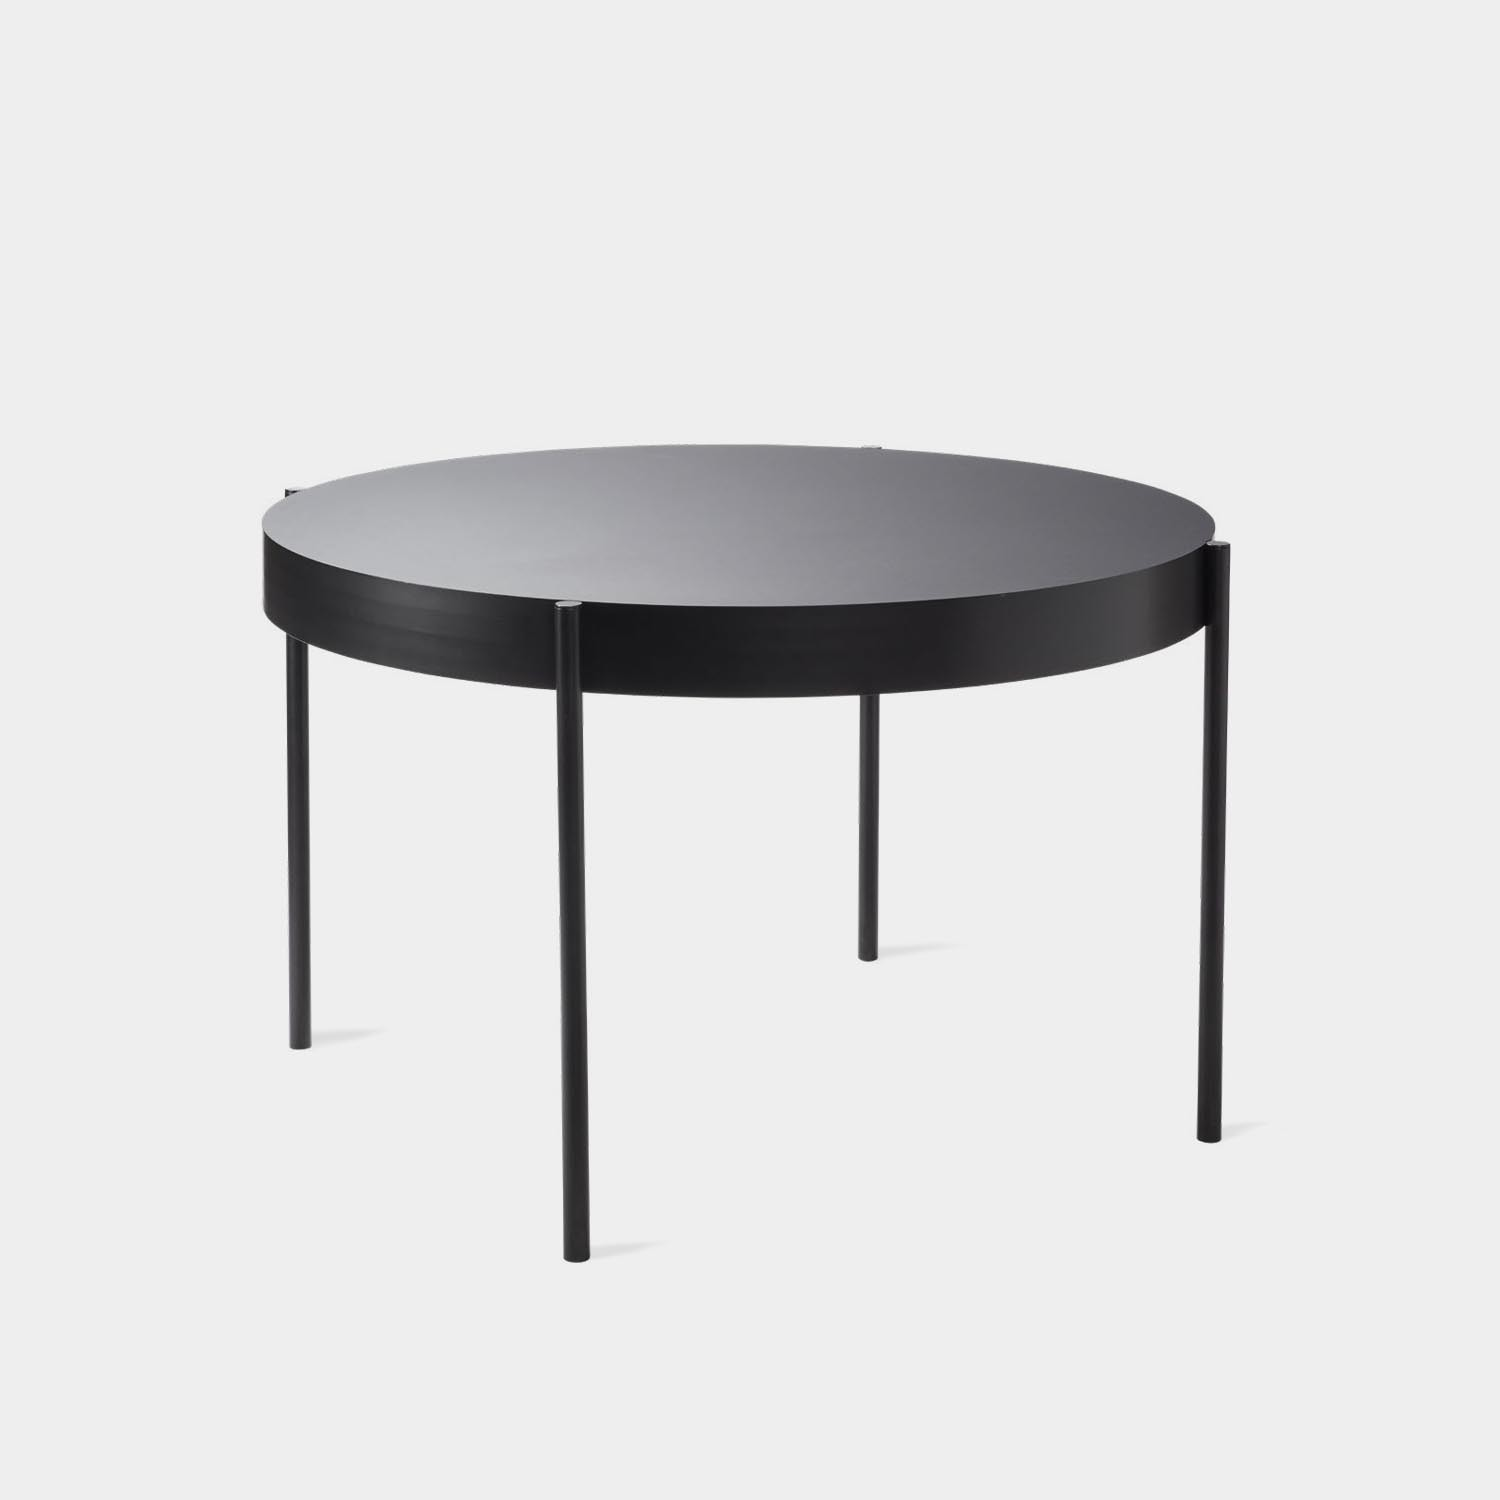 Series 430 Round Table, Black